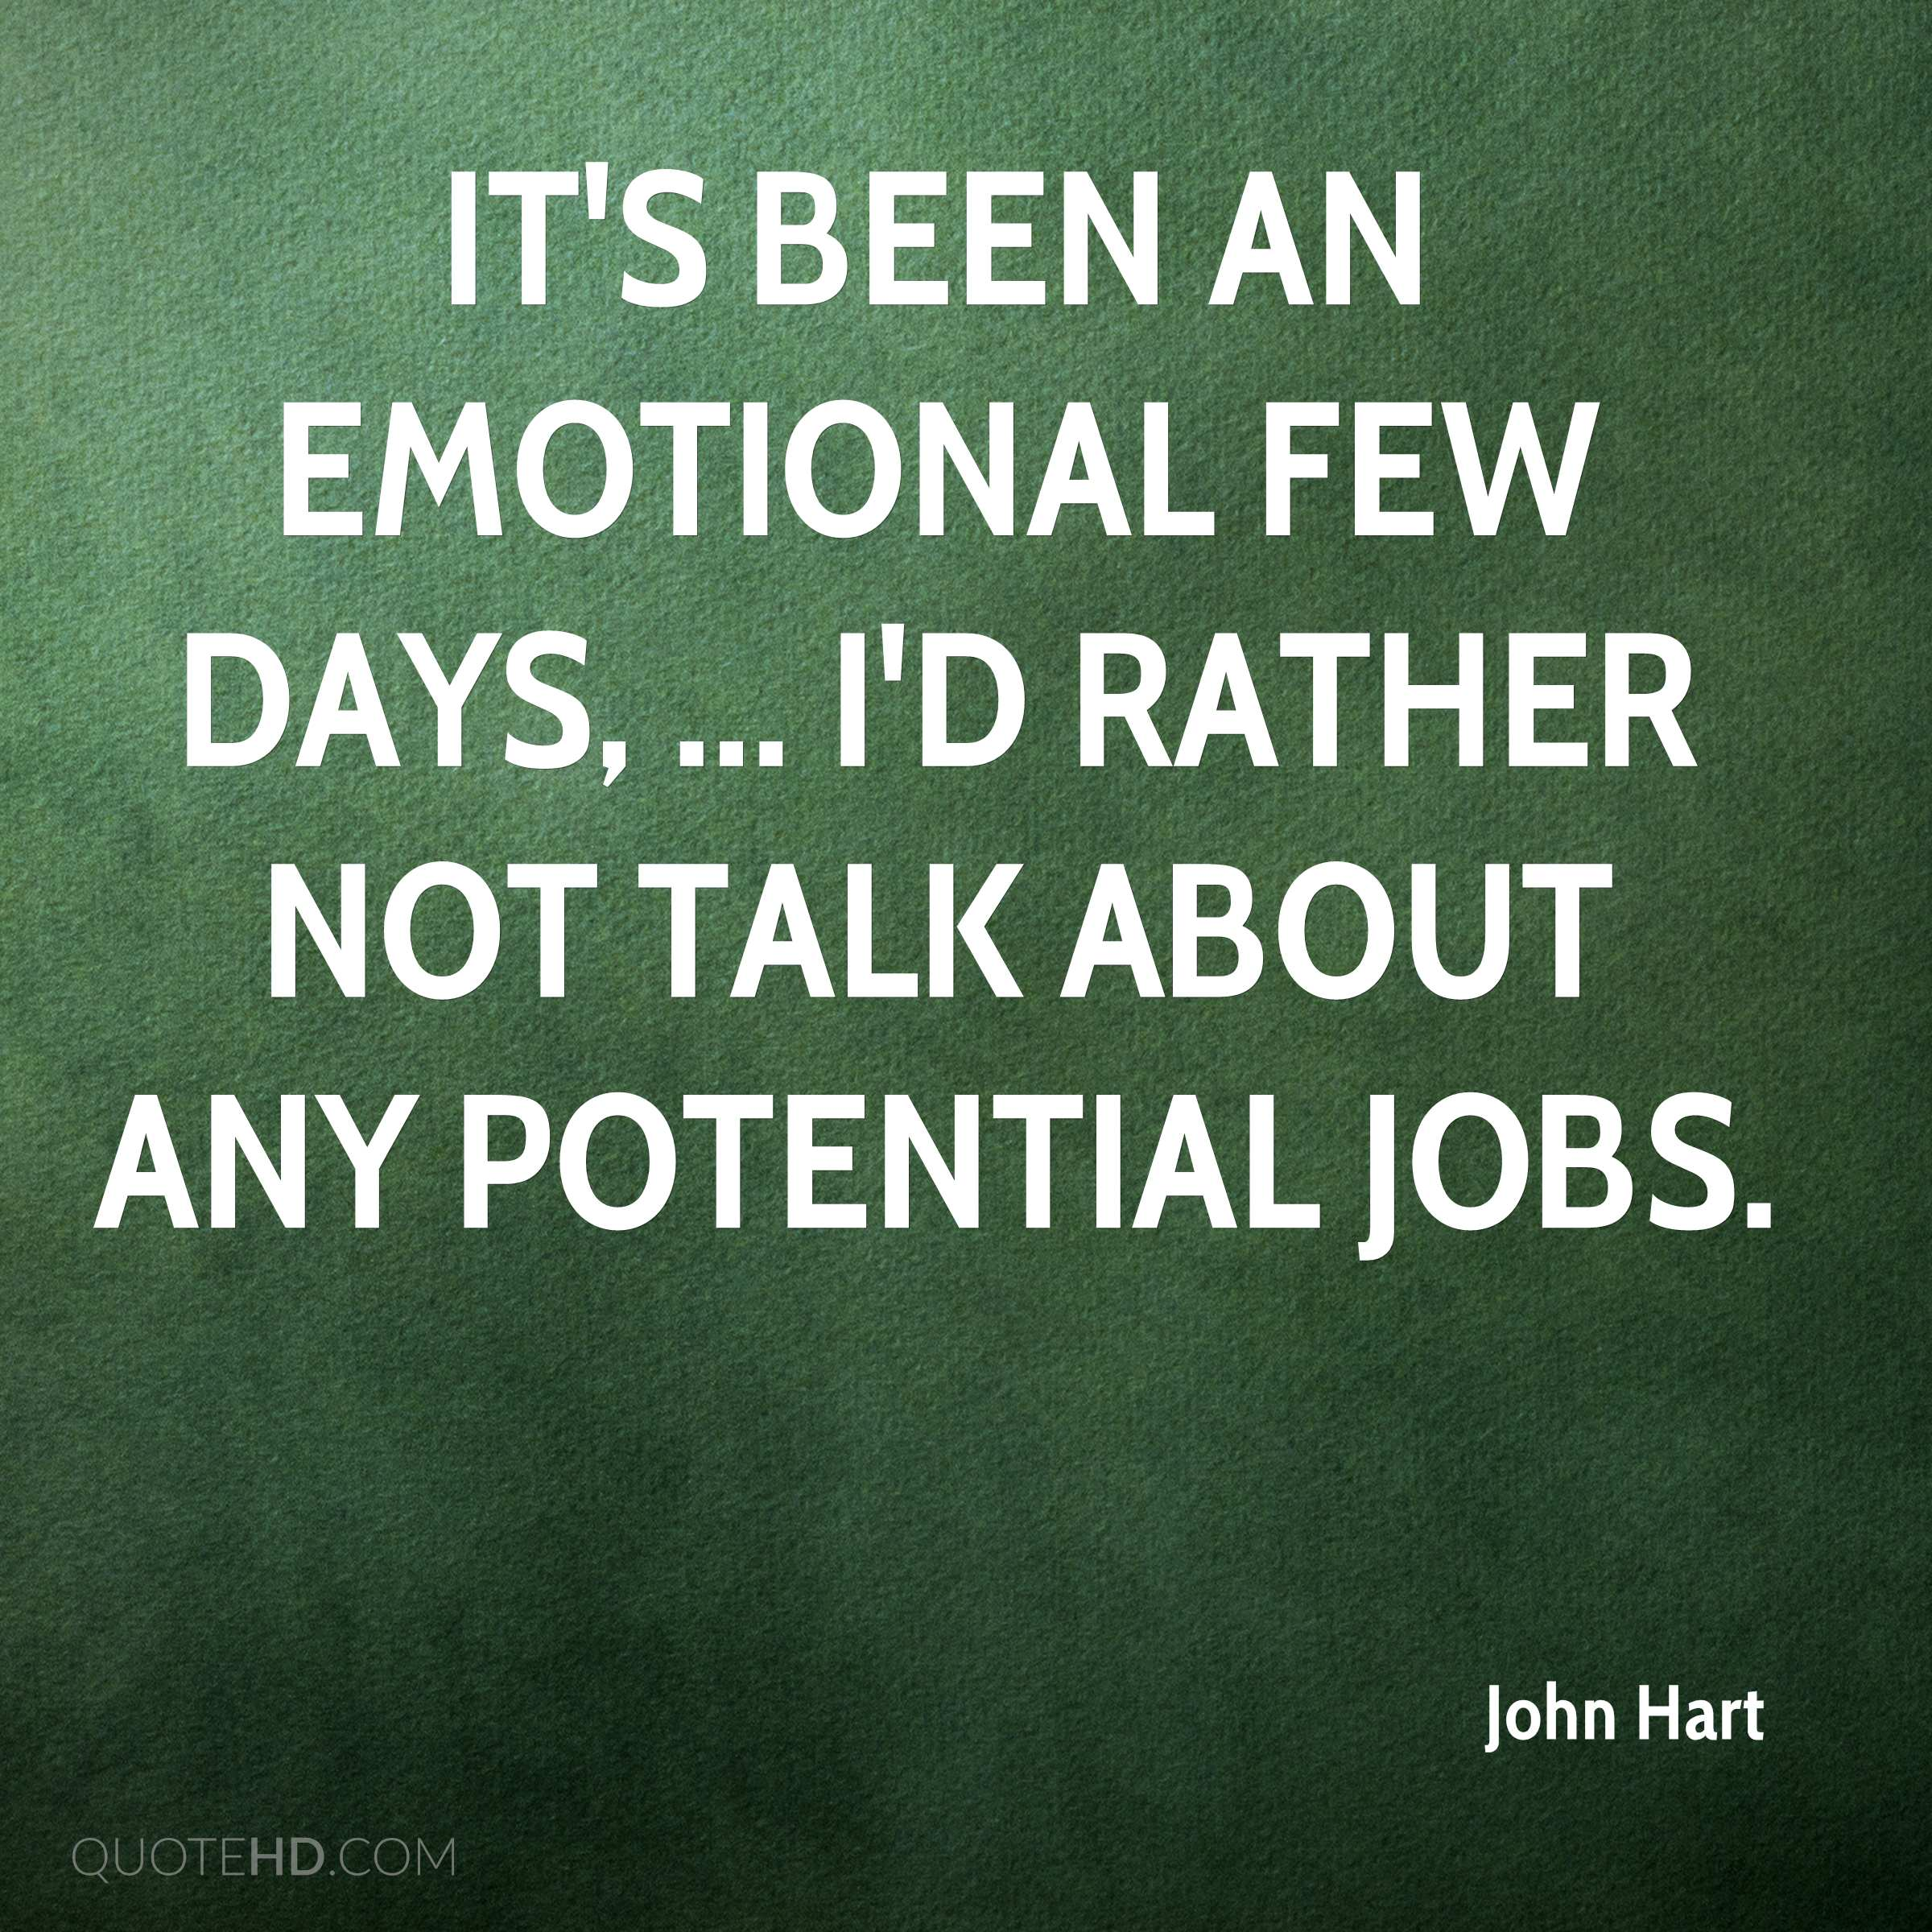 It's been an emotional few days, ... I'd rather not talk about any potential jobs.